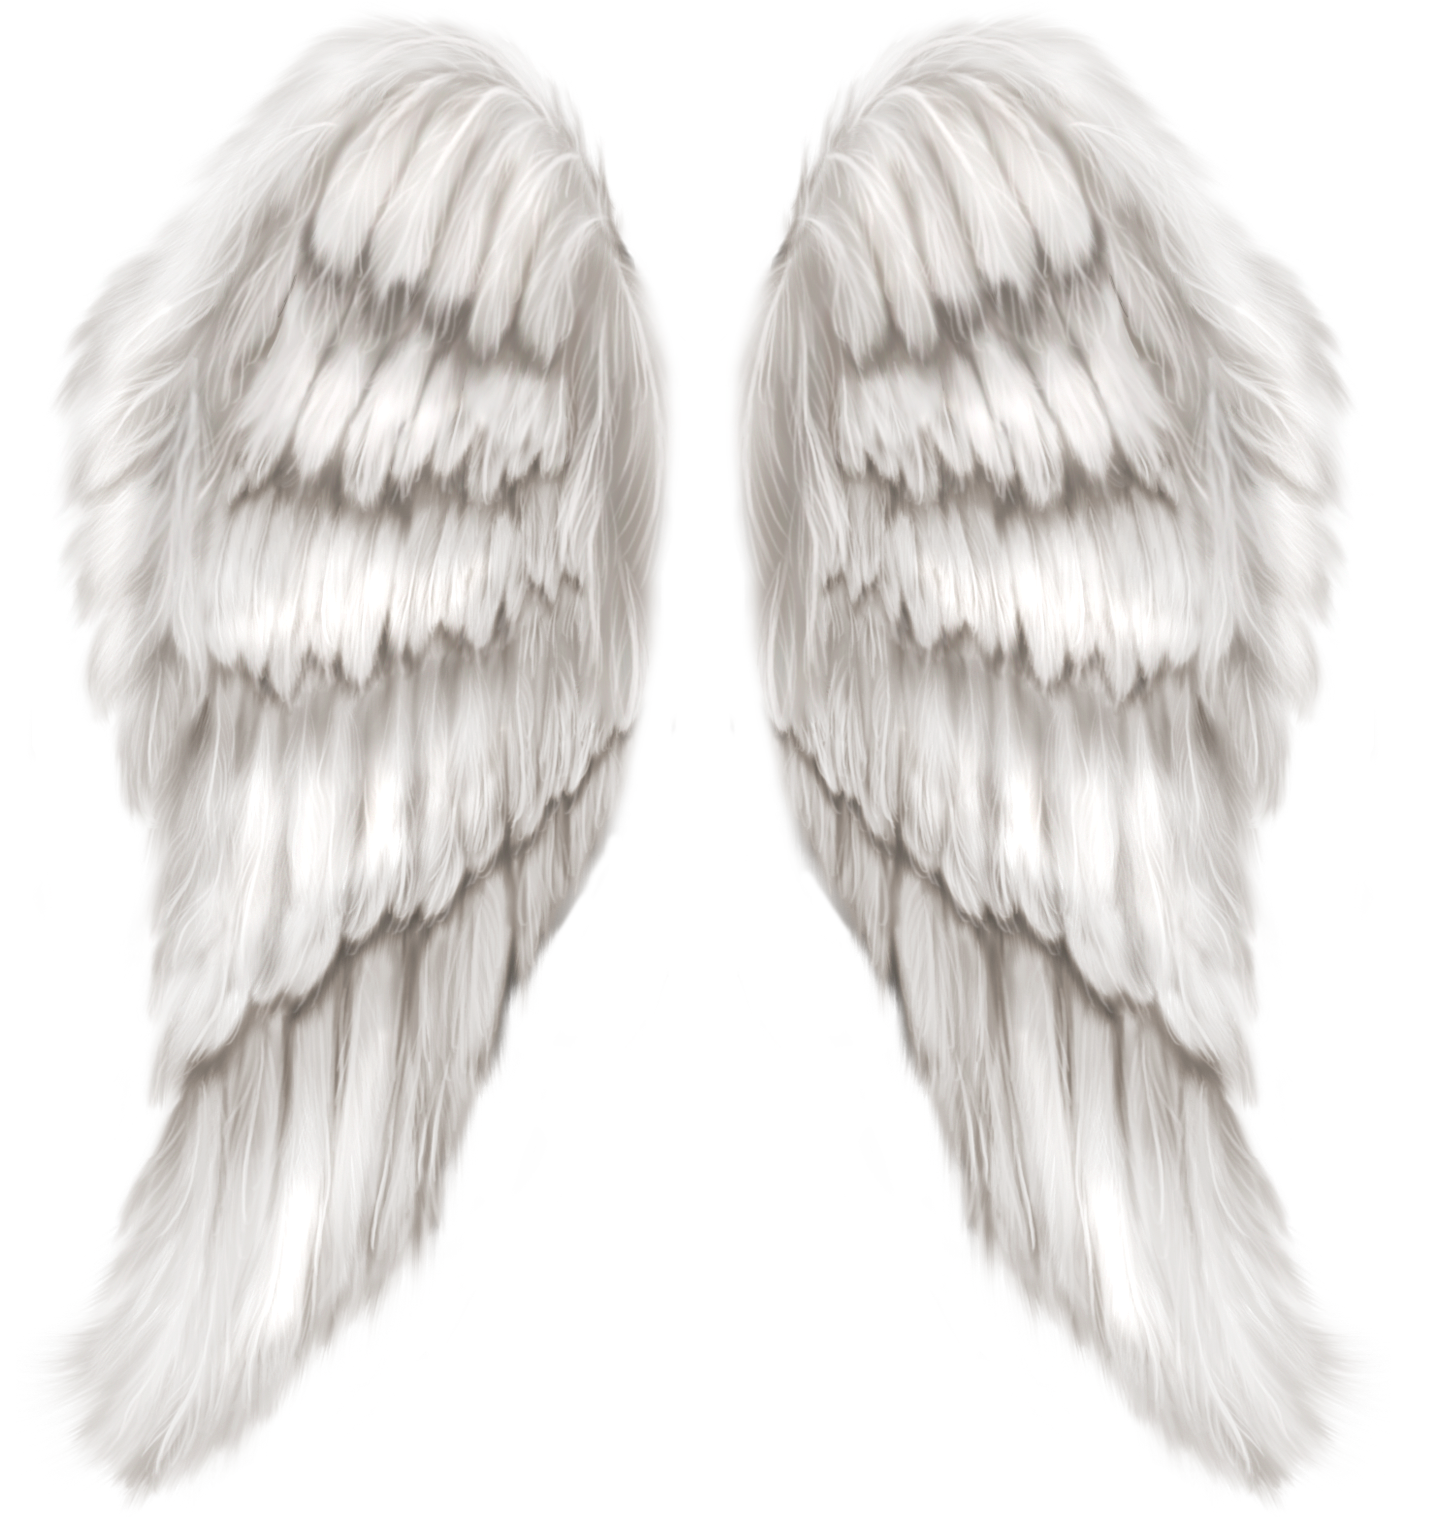 White angel wings png. Transparent clip art image